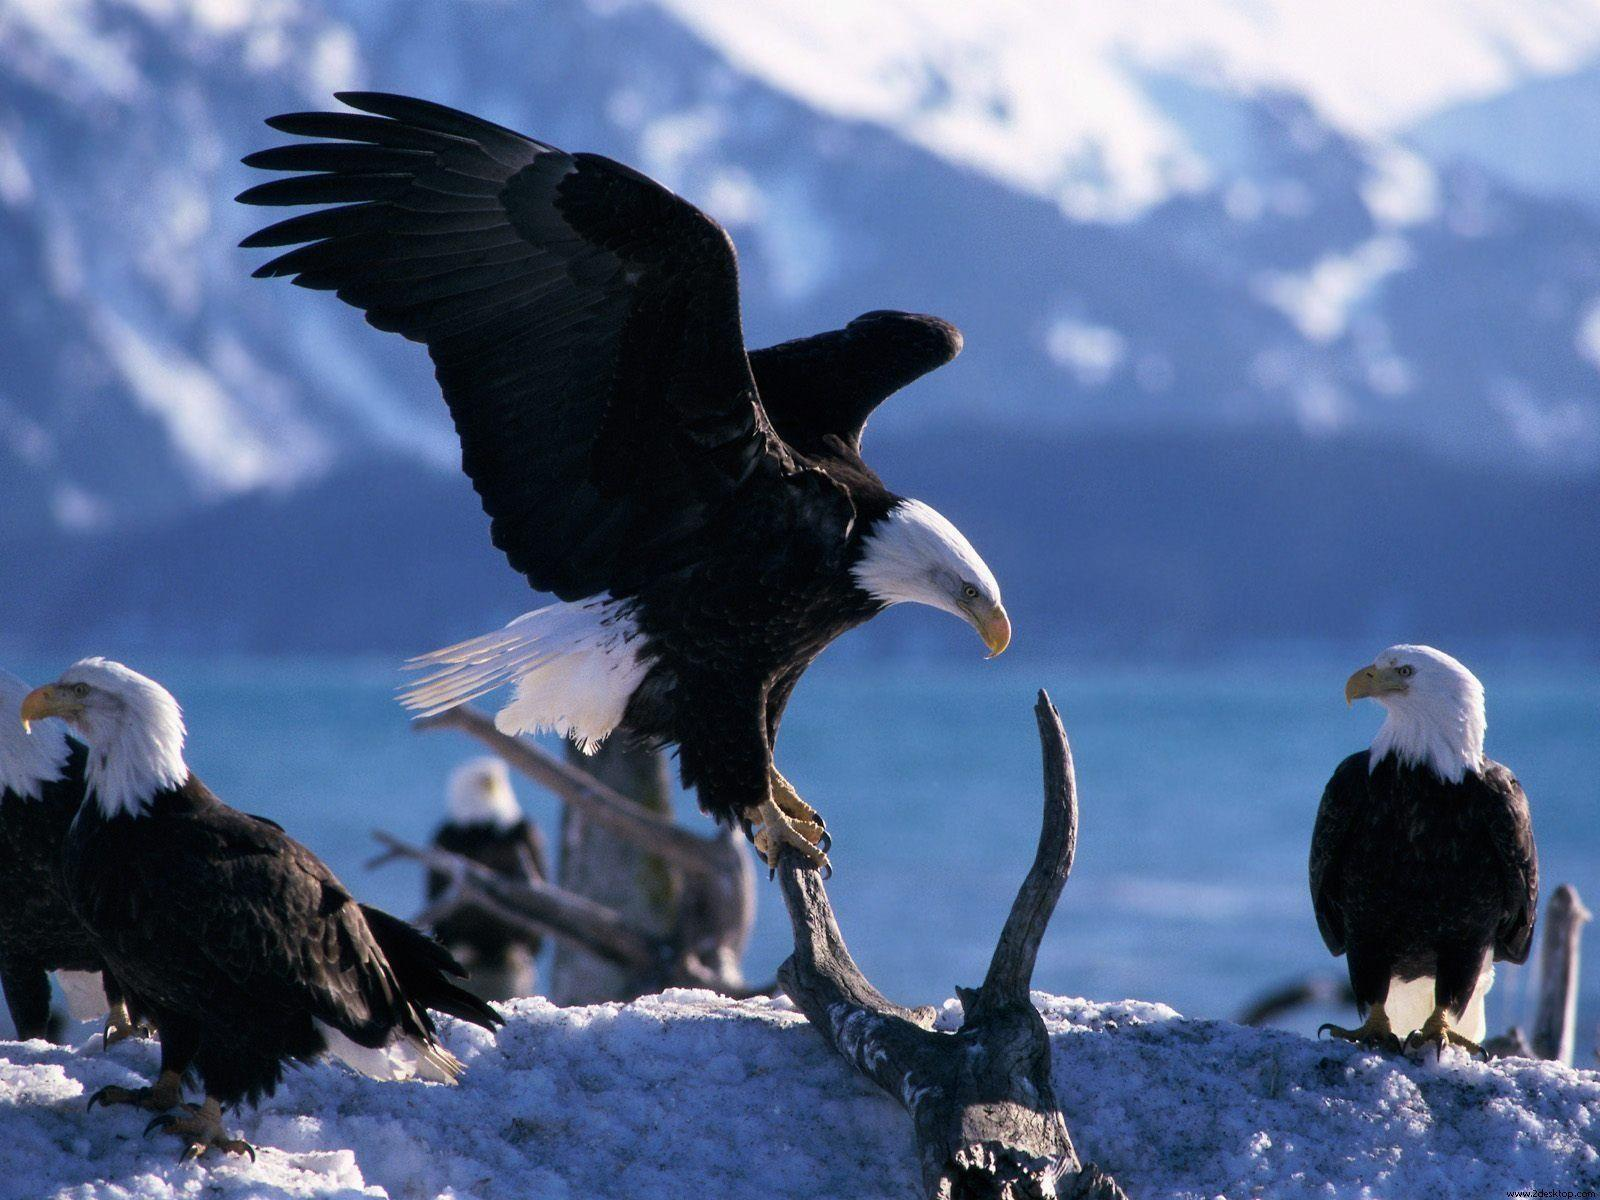 Animals : Pretty Animals Wings Extended Bald Eagles Desktop Image